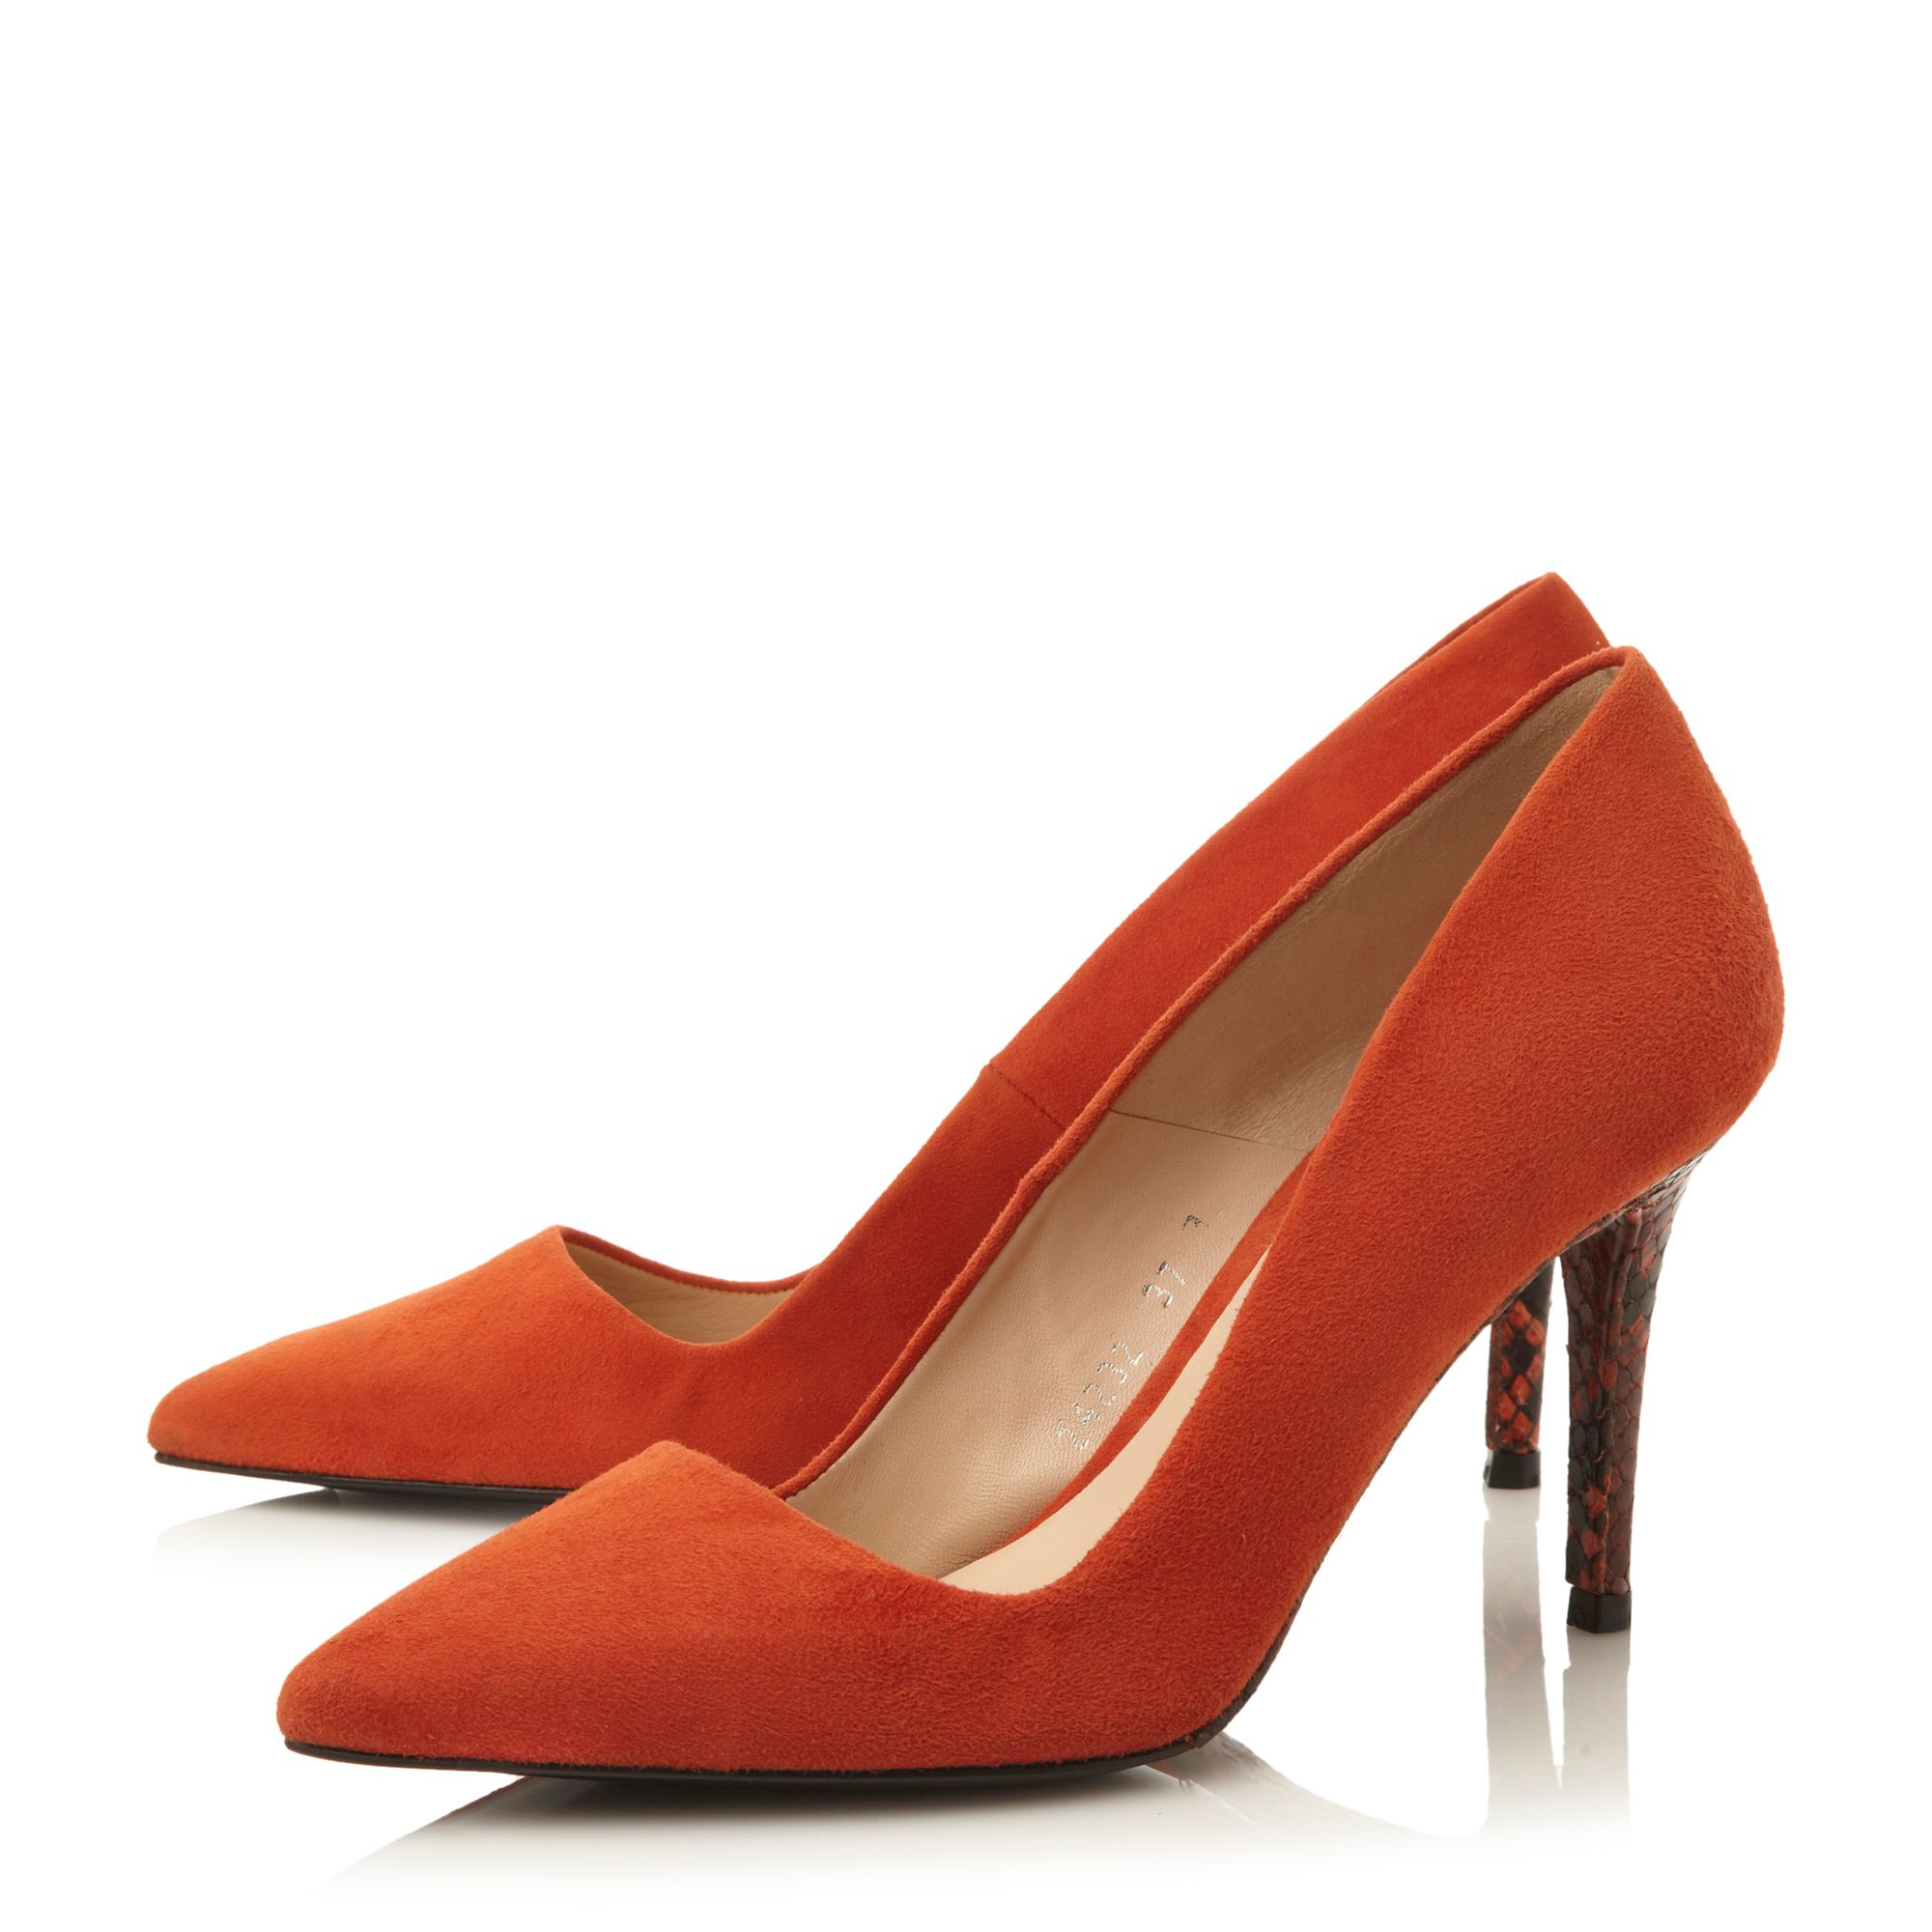 Orange Patent Leather Court Shoes